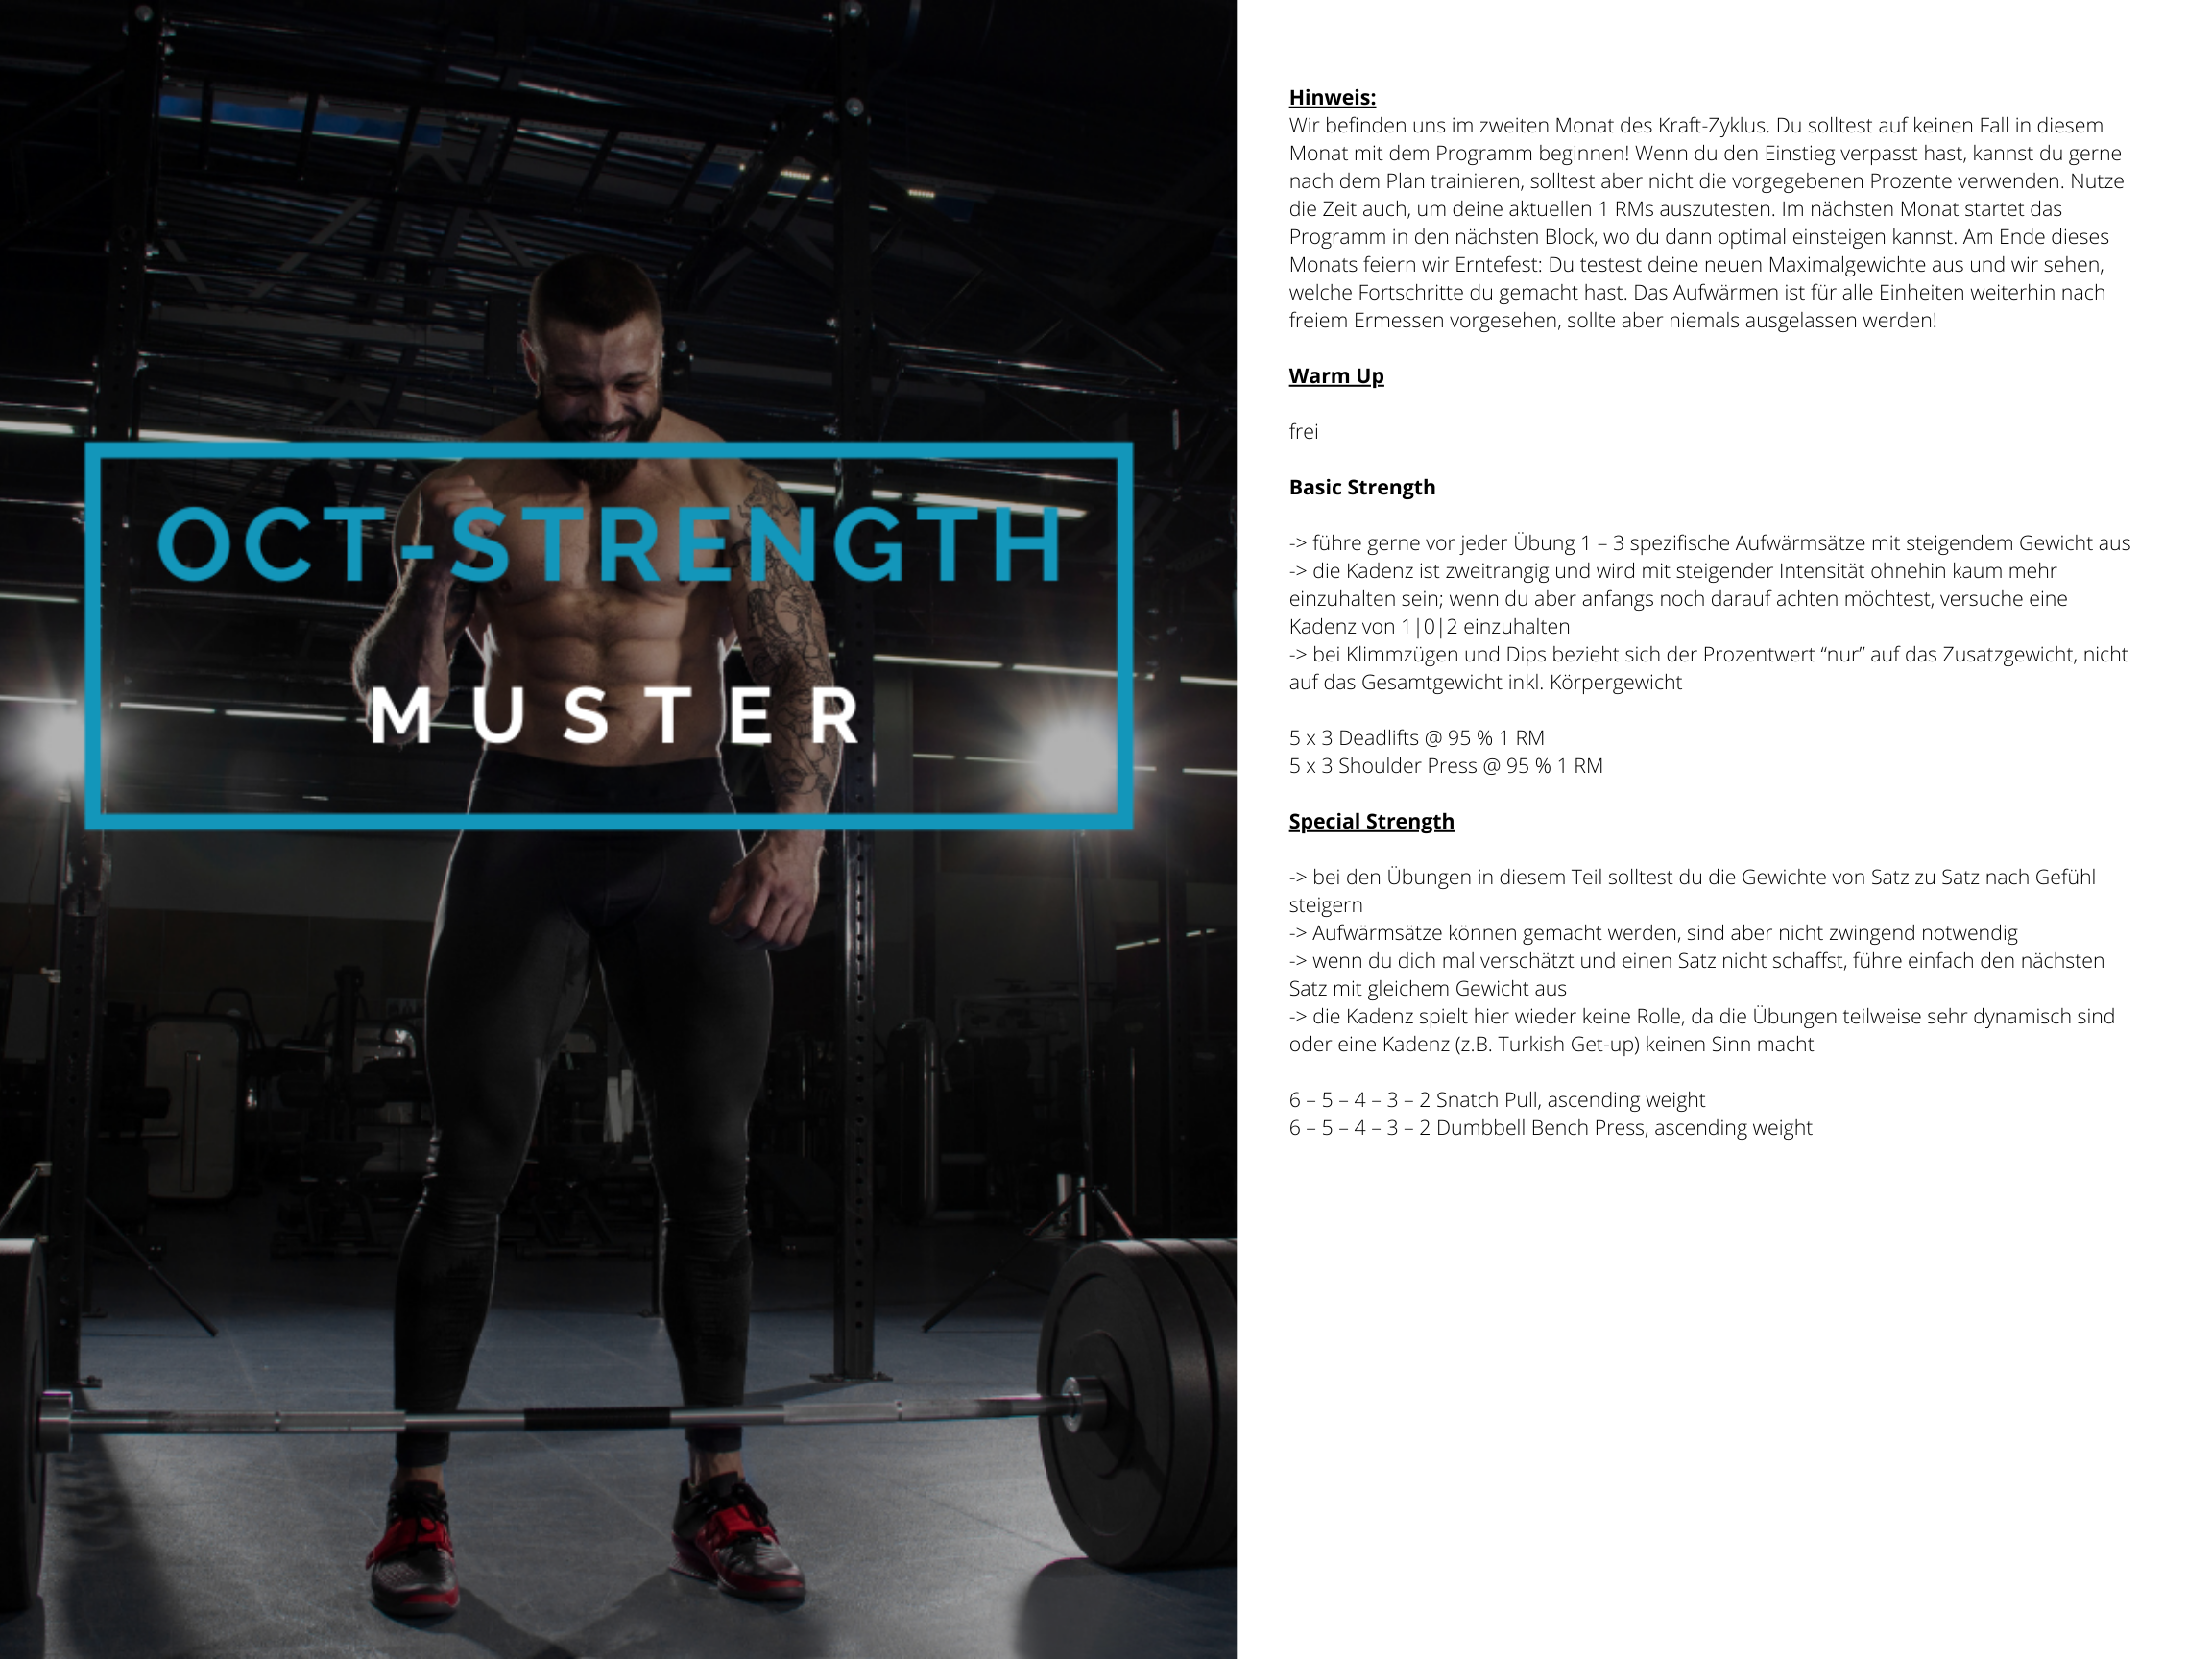 OCT-STRENGTH Muster Trainingsplan 2